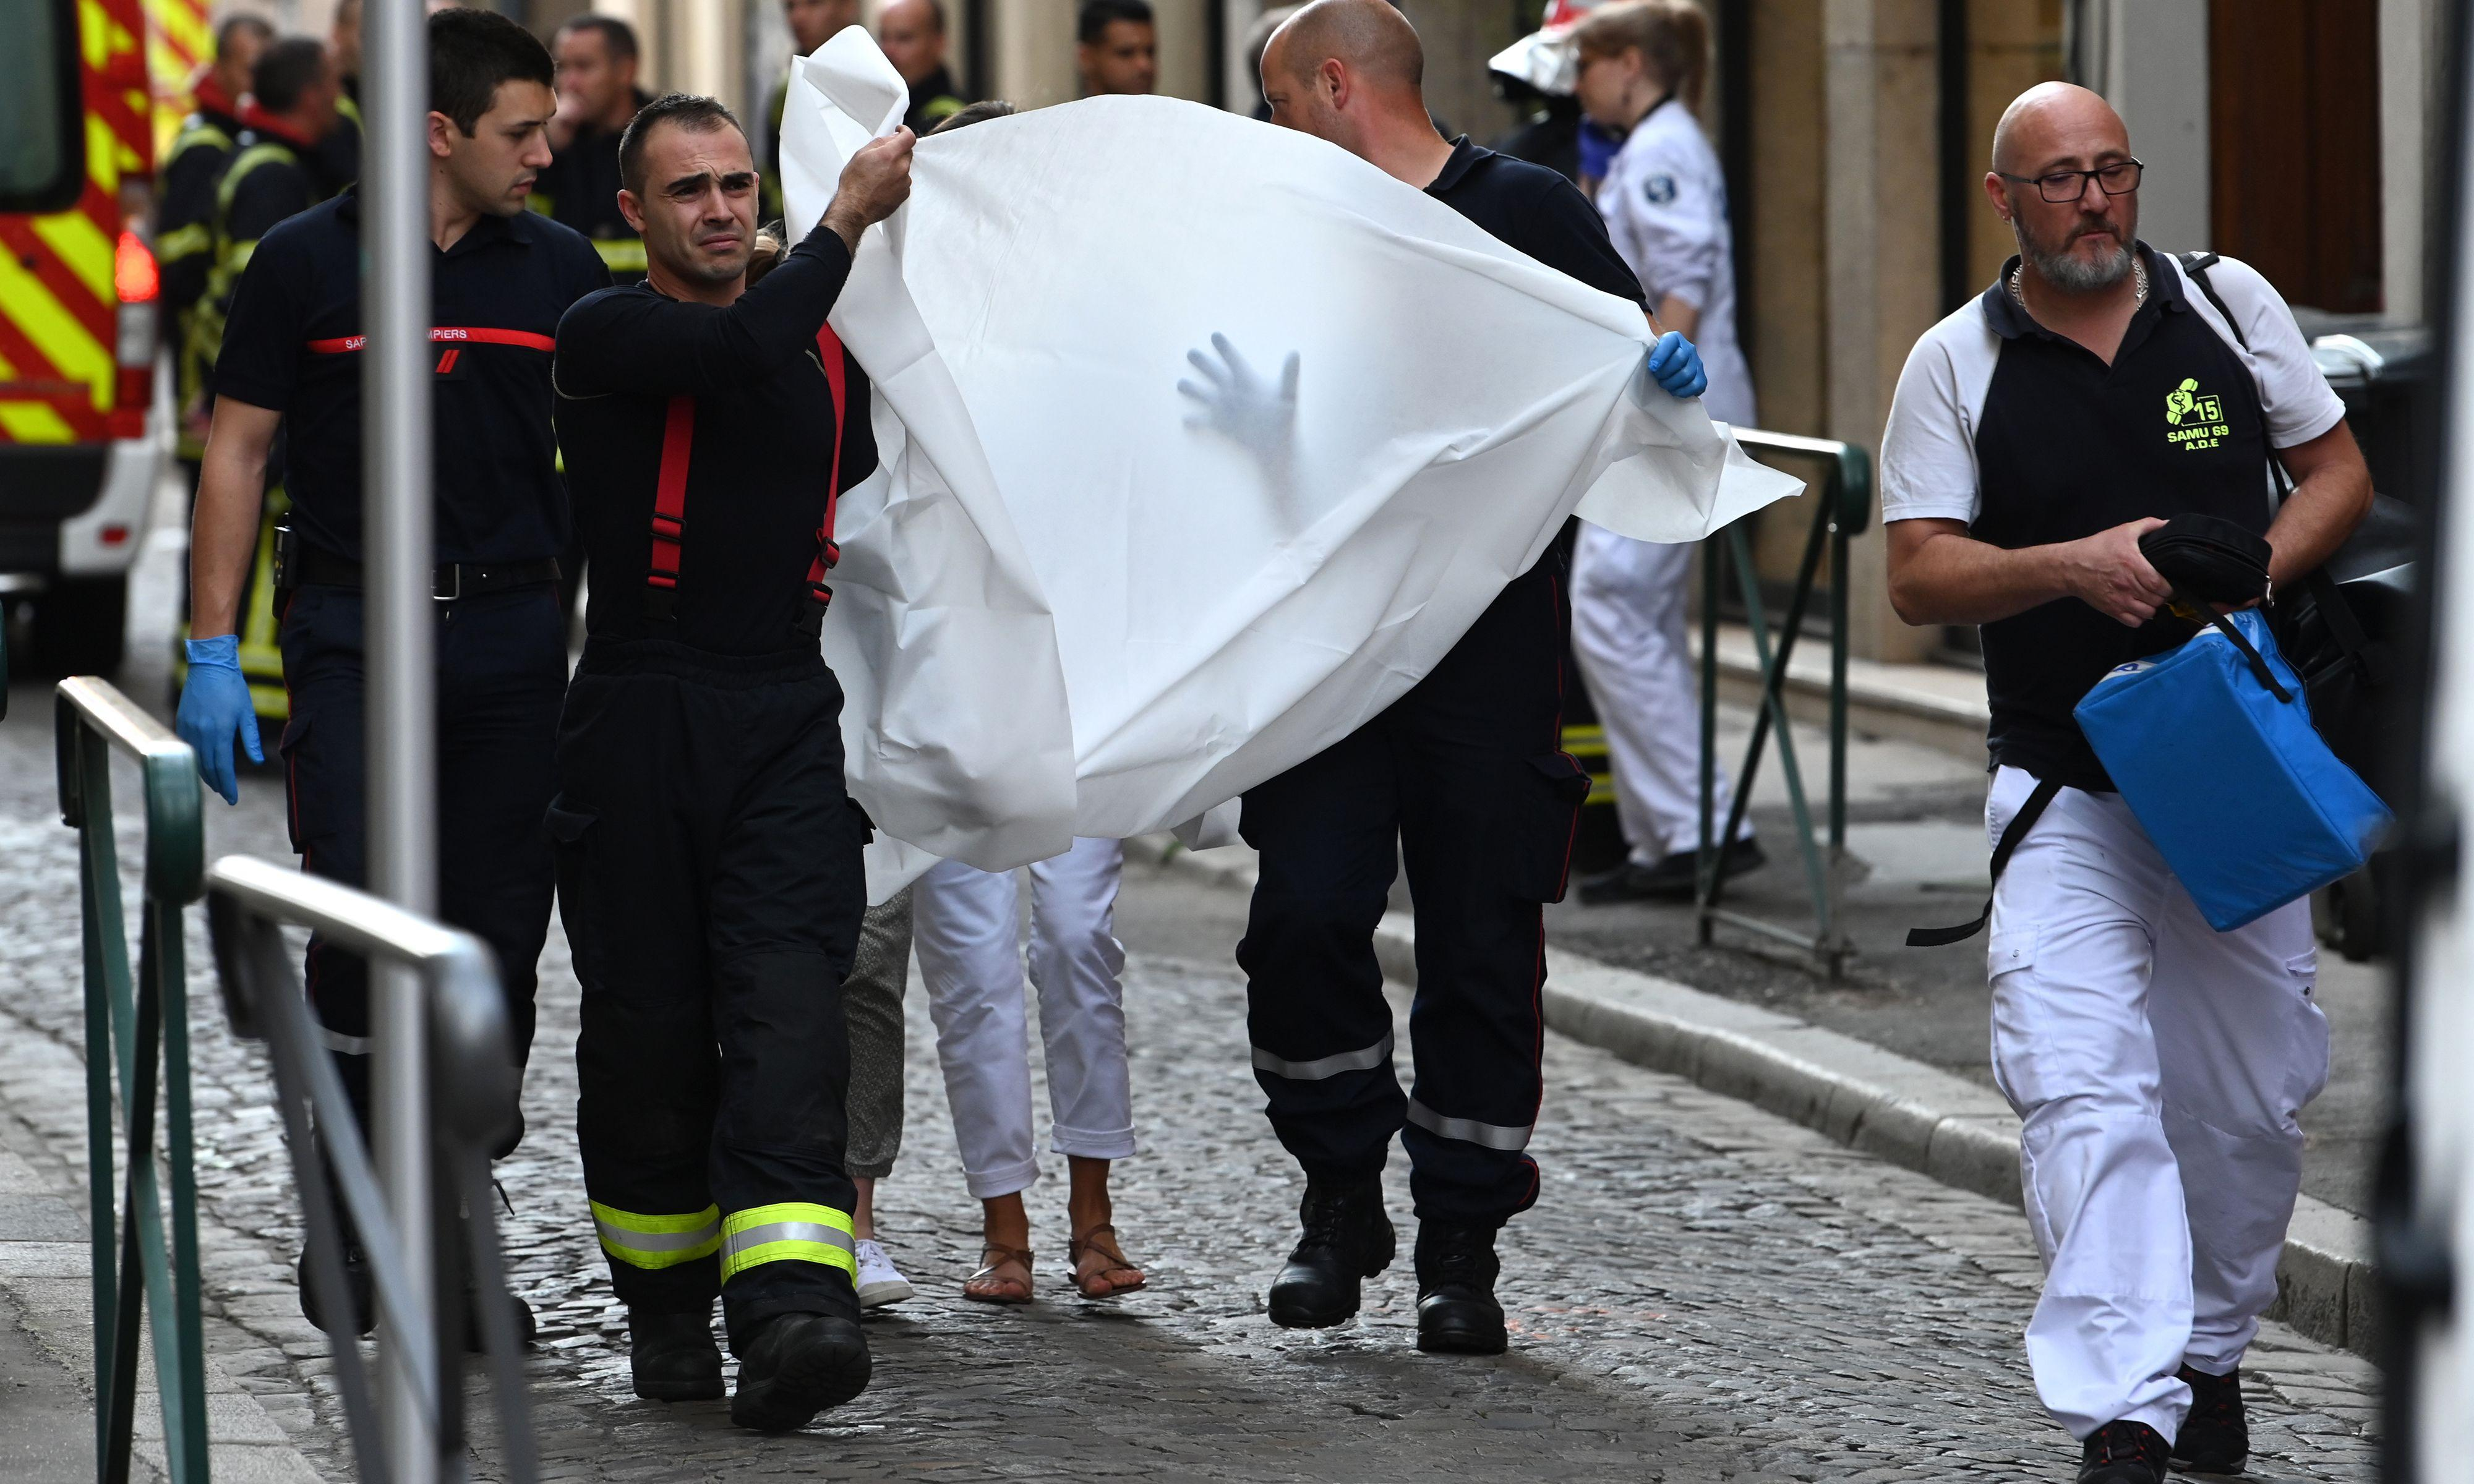 Several people injured in suspected package bomb blast in France